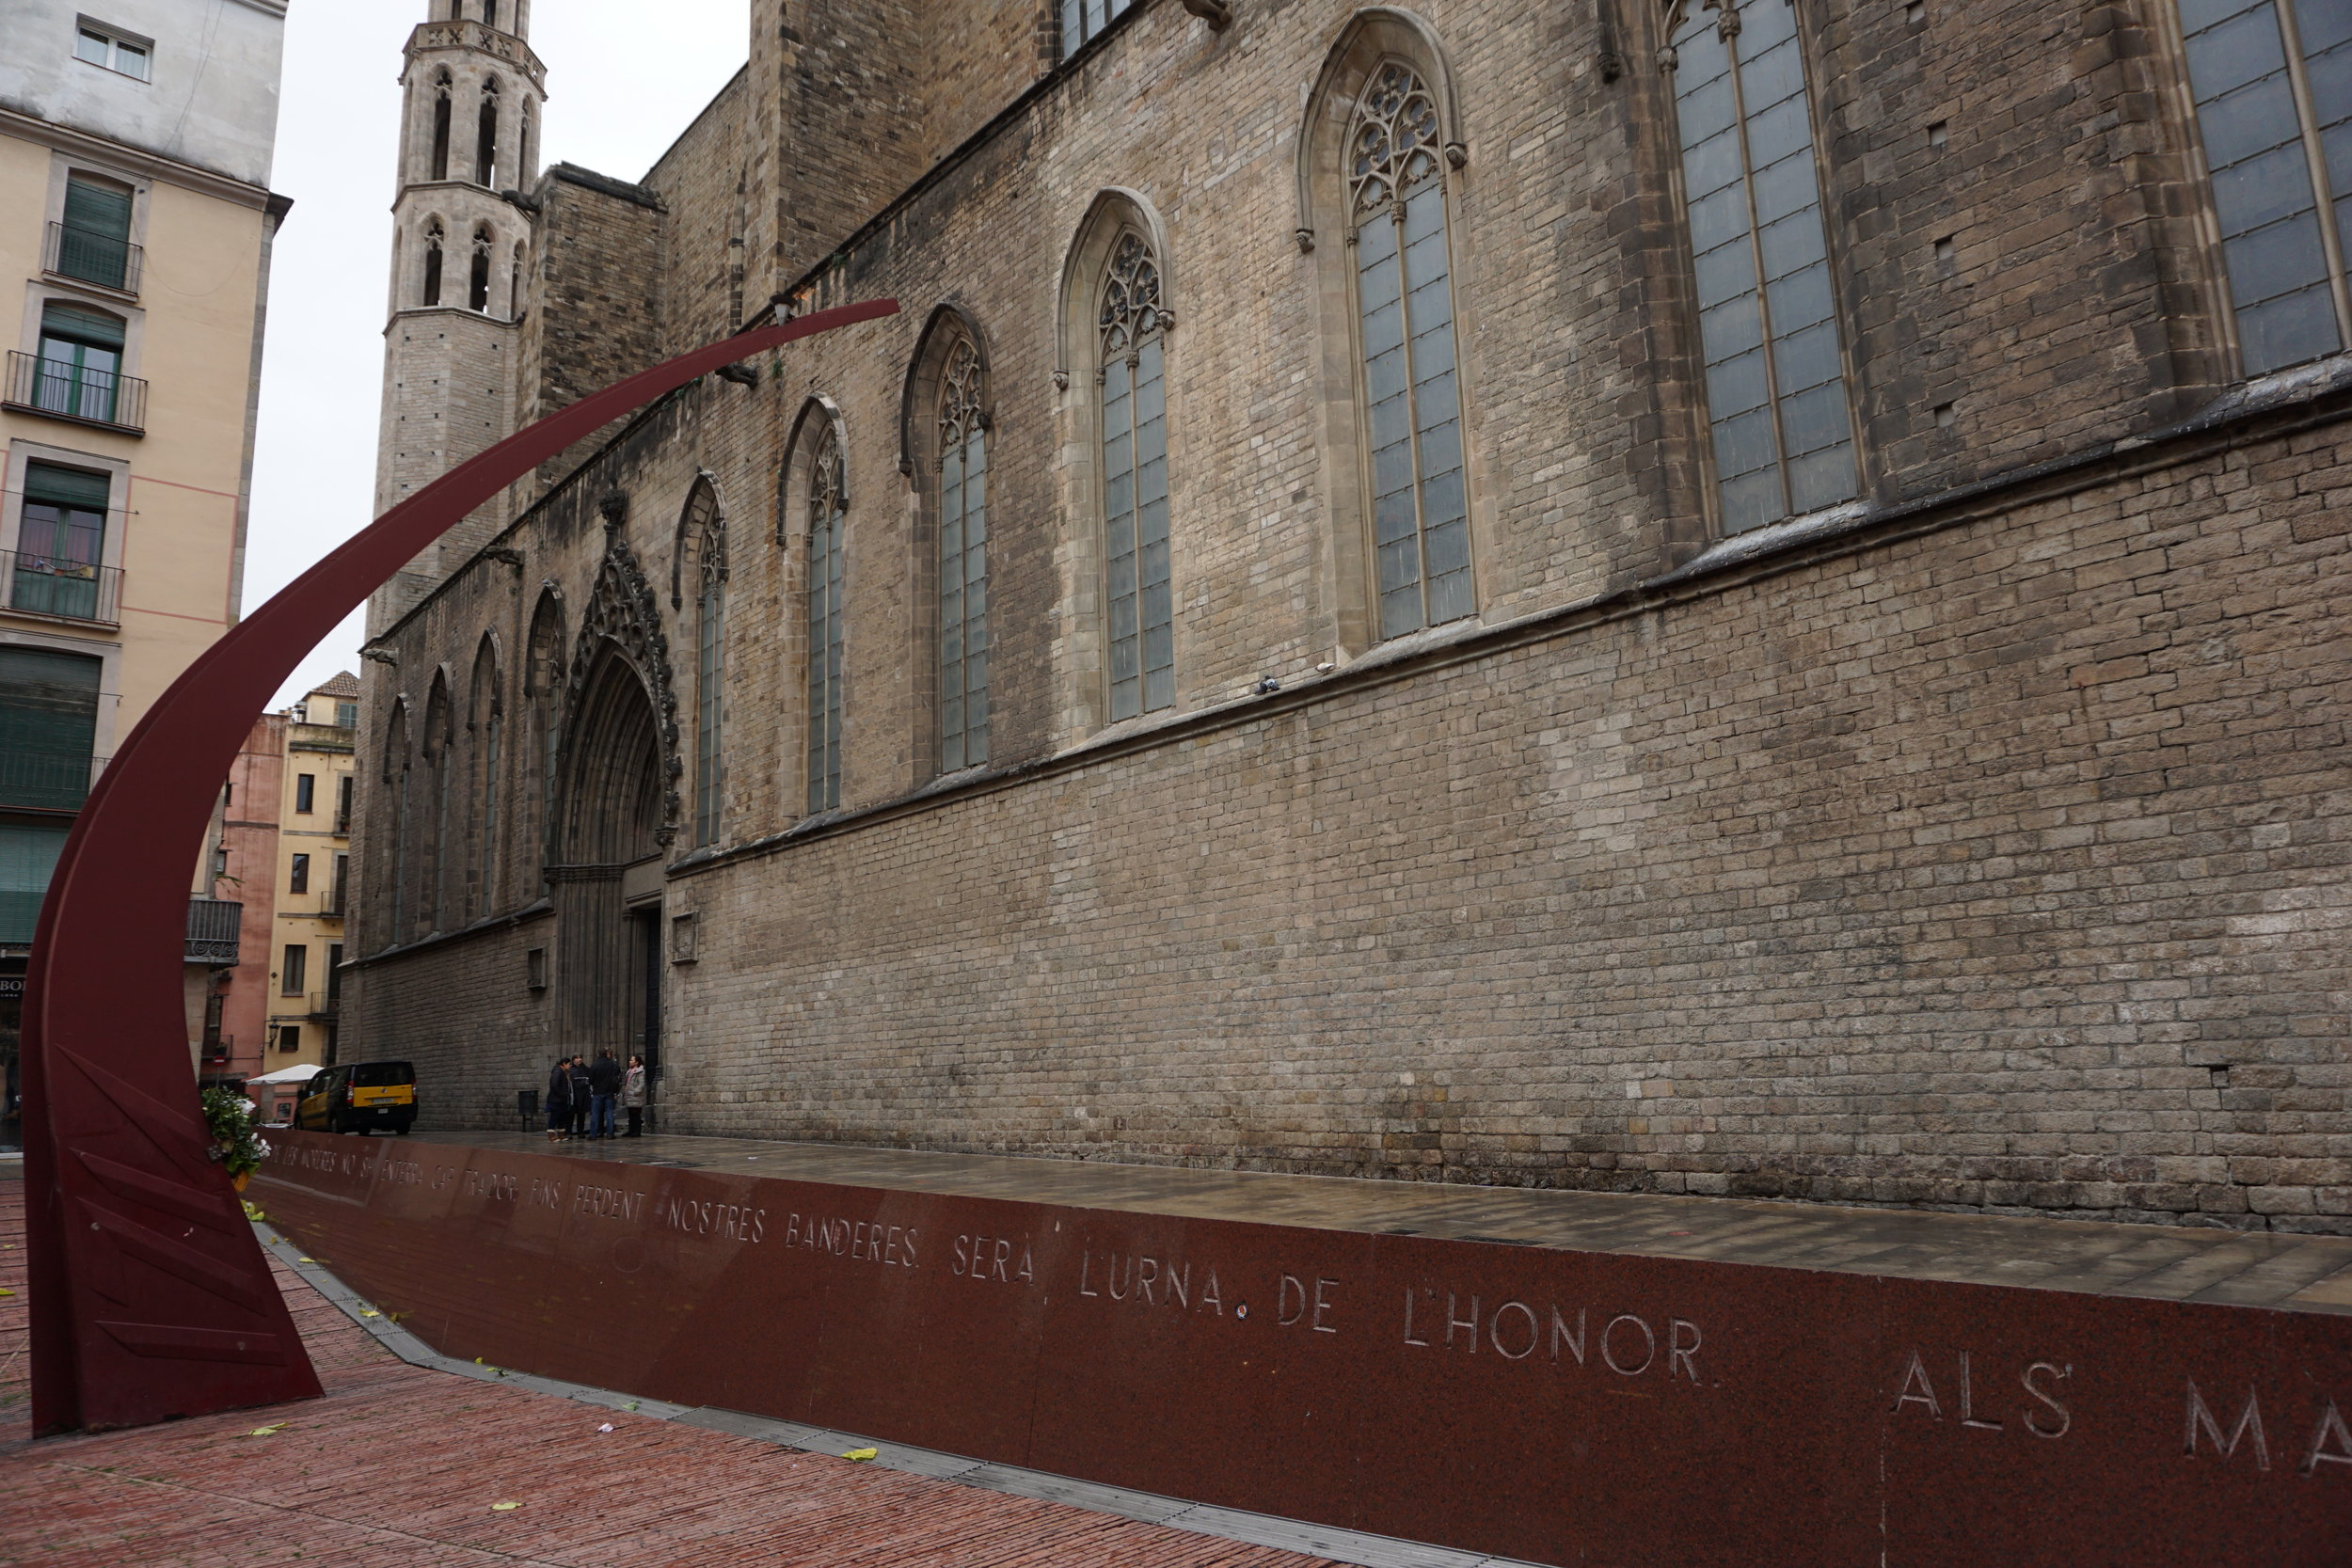 Fossar de les Moreres, a memorial square that was built over a cemetery where Catalan defenders of the city were buried following the Siege of Barcelona at the end of the War of the Spanish Succession in 1714